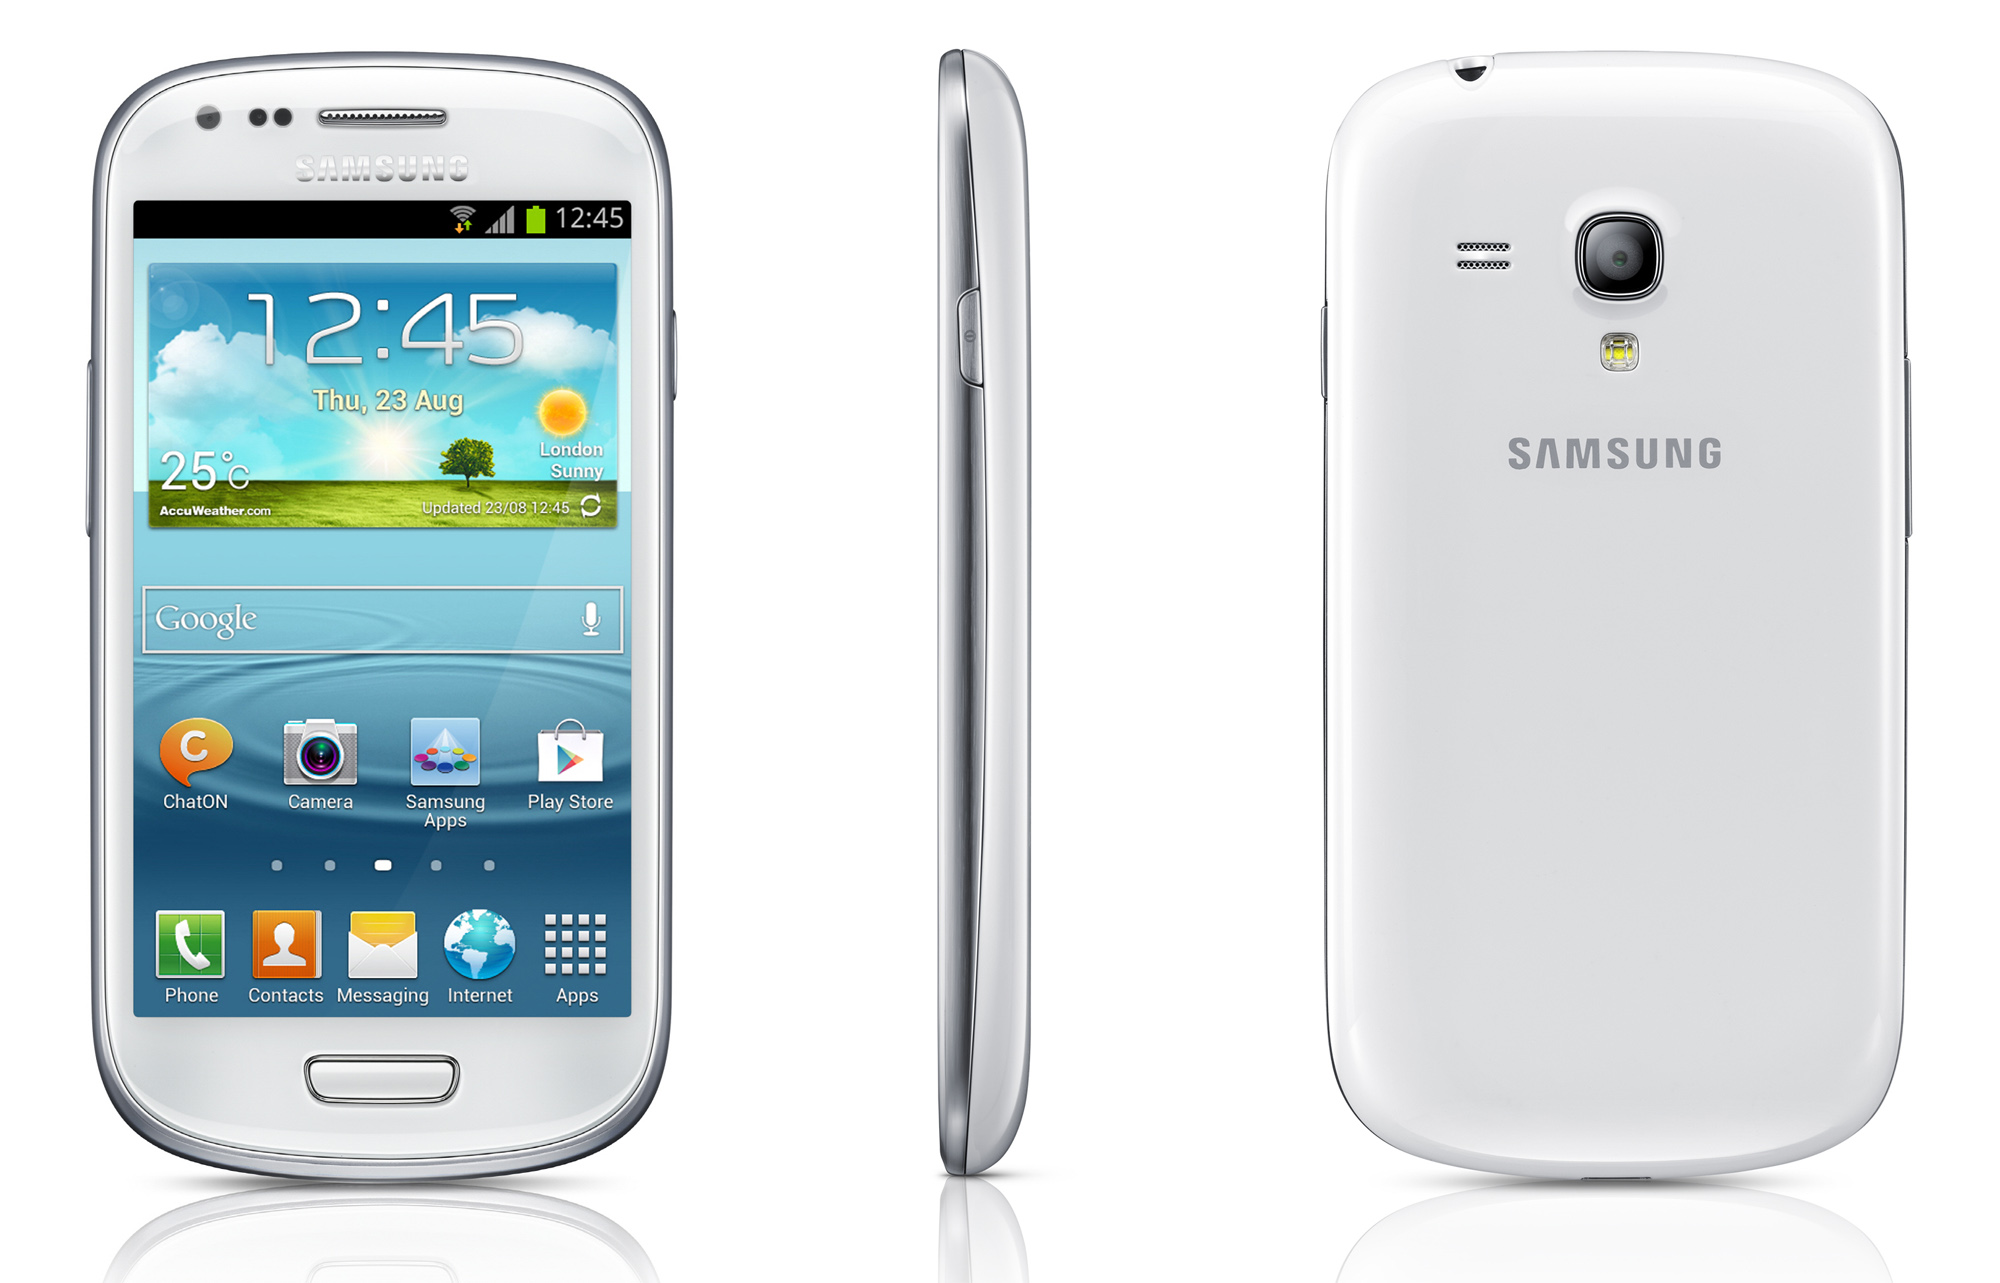 samsung galaxy s3 white 16gb android 4g lte phone verizon. Black Bedroom Furniture Sets. Home Design Ideas